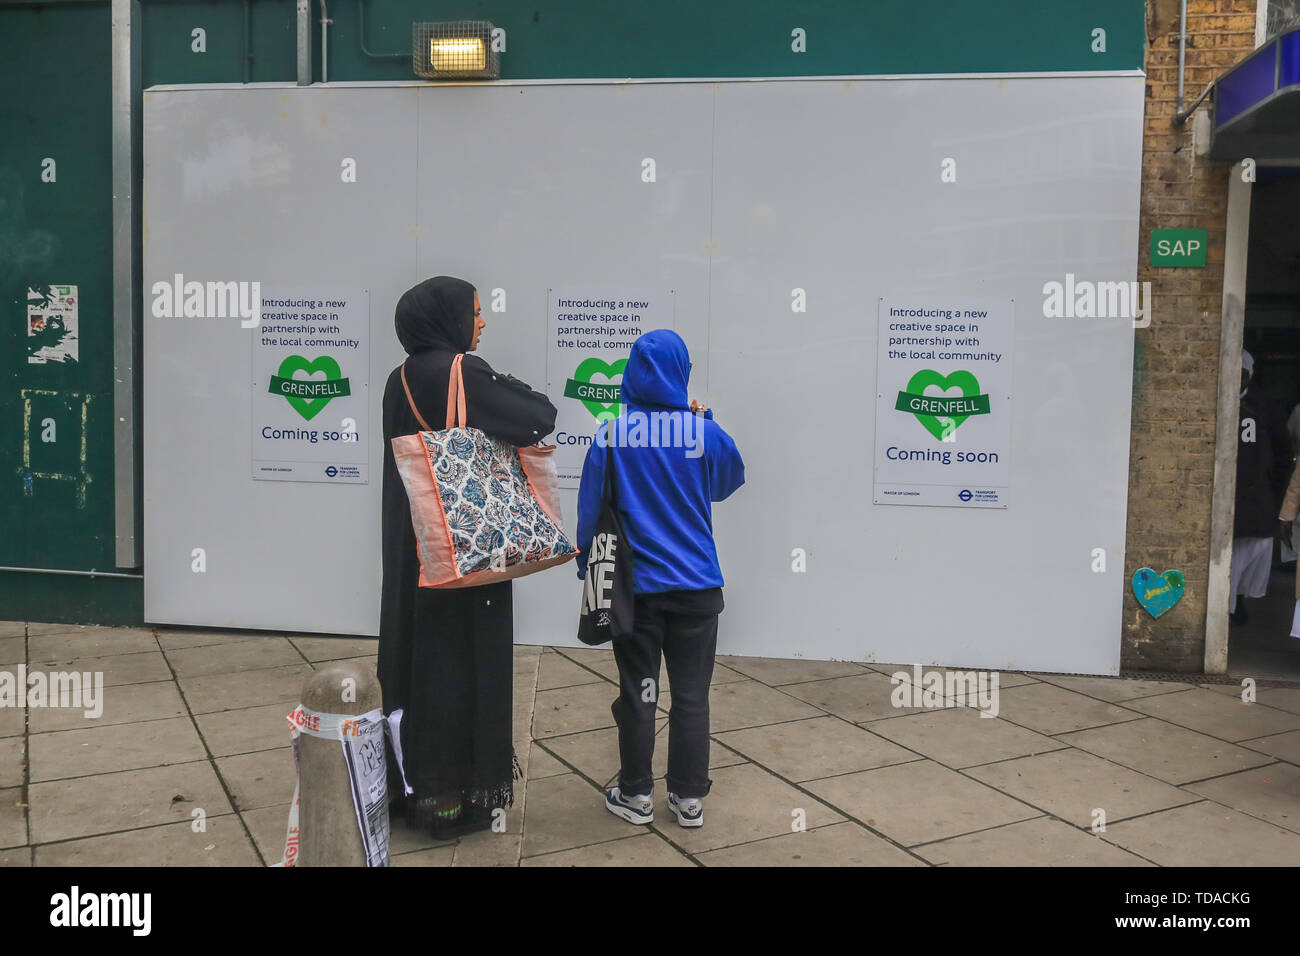 London, UK. 13th June, 2019. Commemorations on the second anniversary of the devastating inferno fire which in the residential tower block in West London on 14 June 2017 Credit: amer ghazzal/Alamy Live News - Stock Image